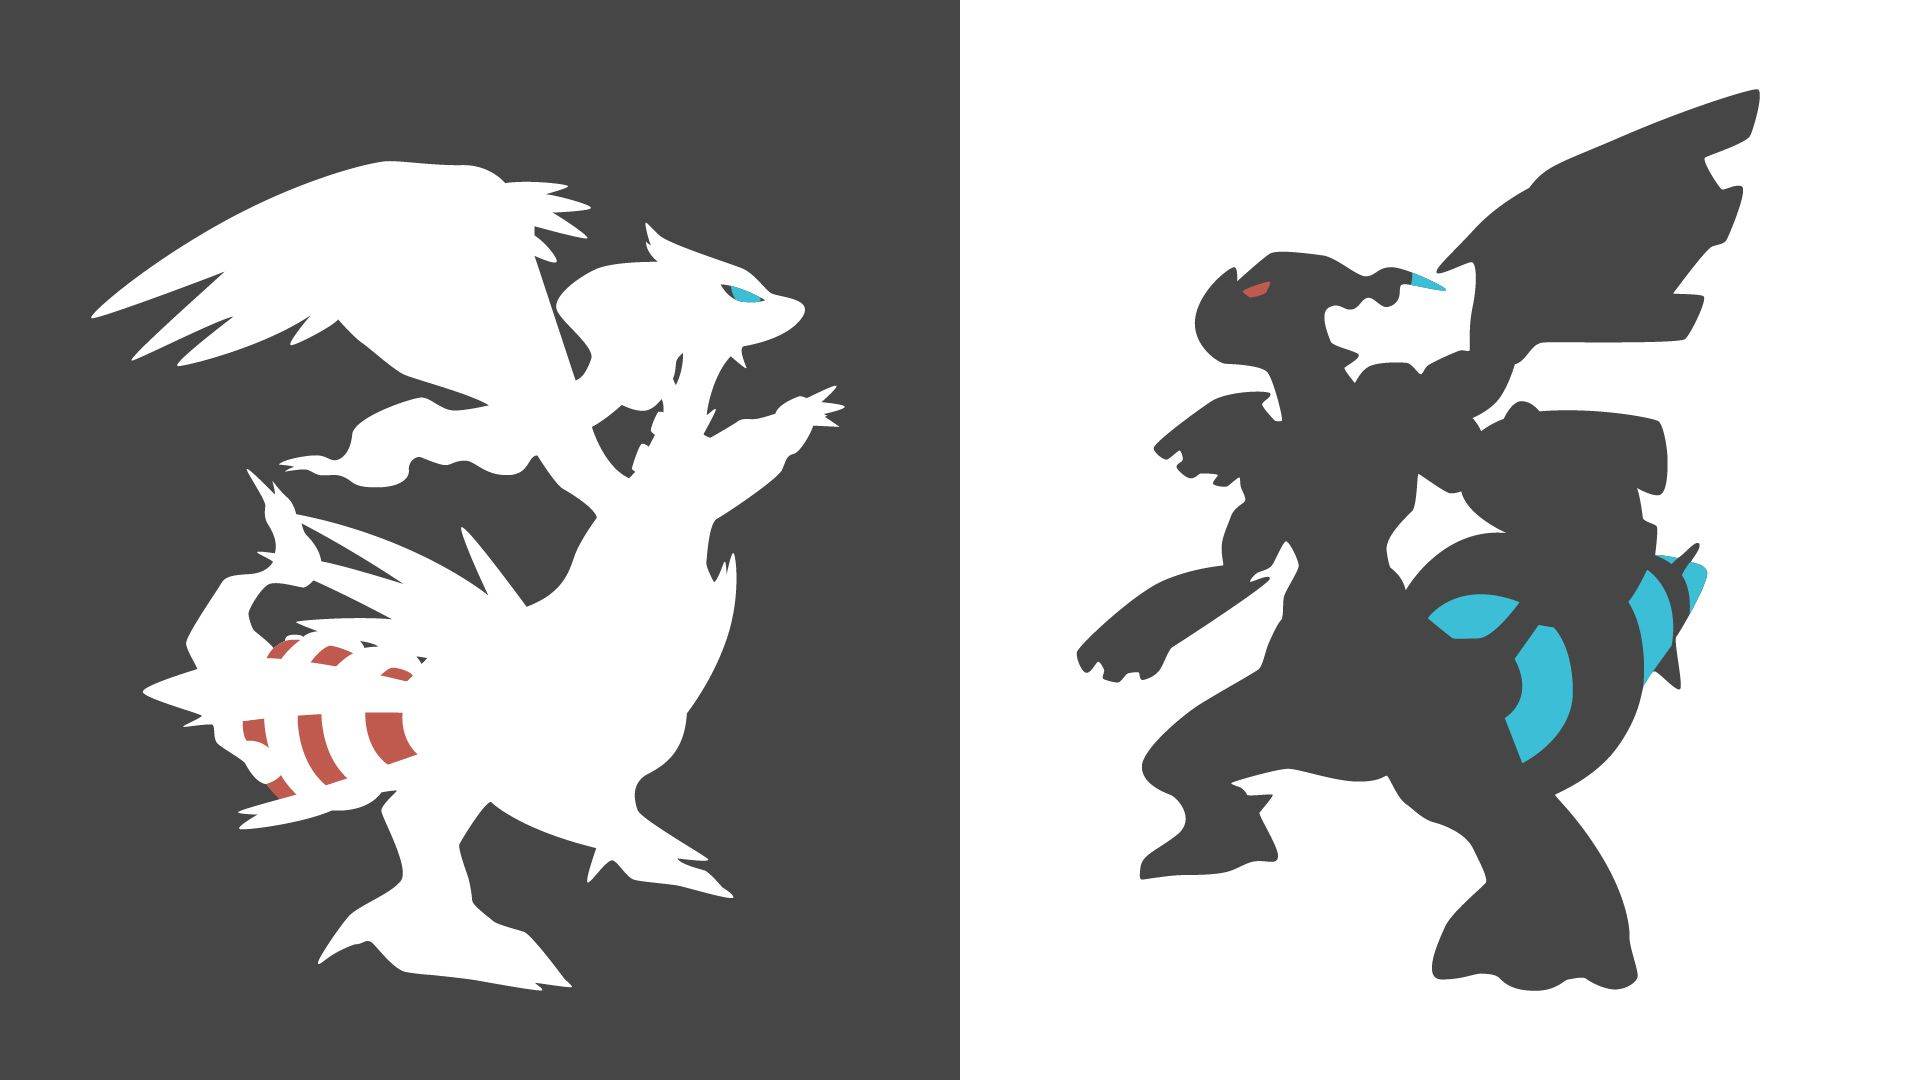 Zekrom And Reshiram Minimalist Wallpaper By Krukmeister Deviantart Com On Deviantart Pokemon Black And White Minimalist Wallpaper Black Pokemon